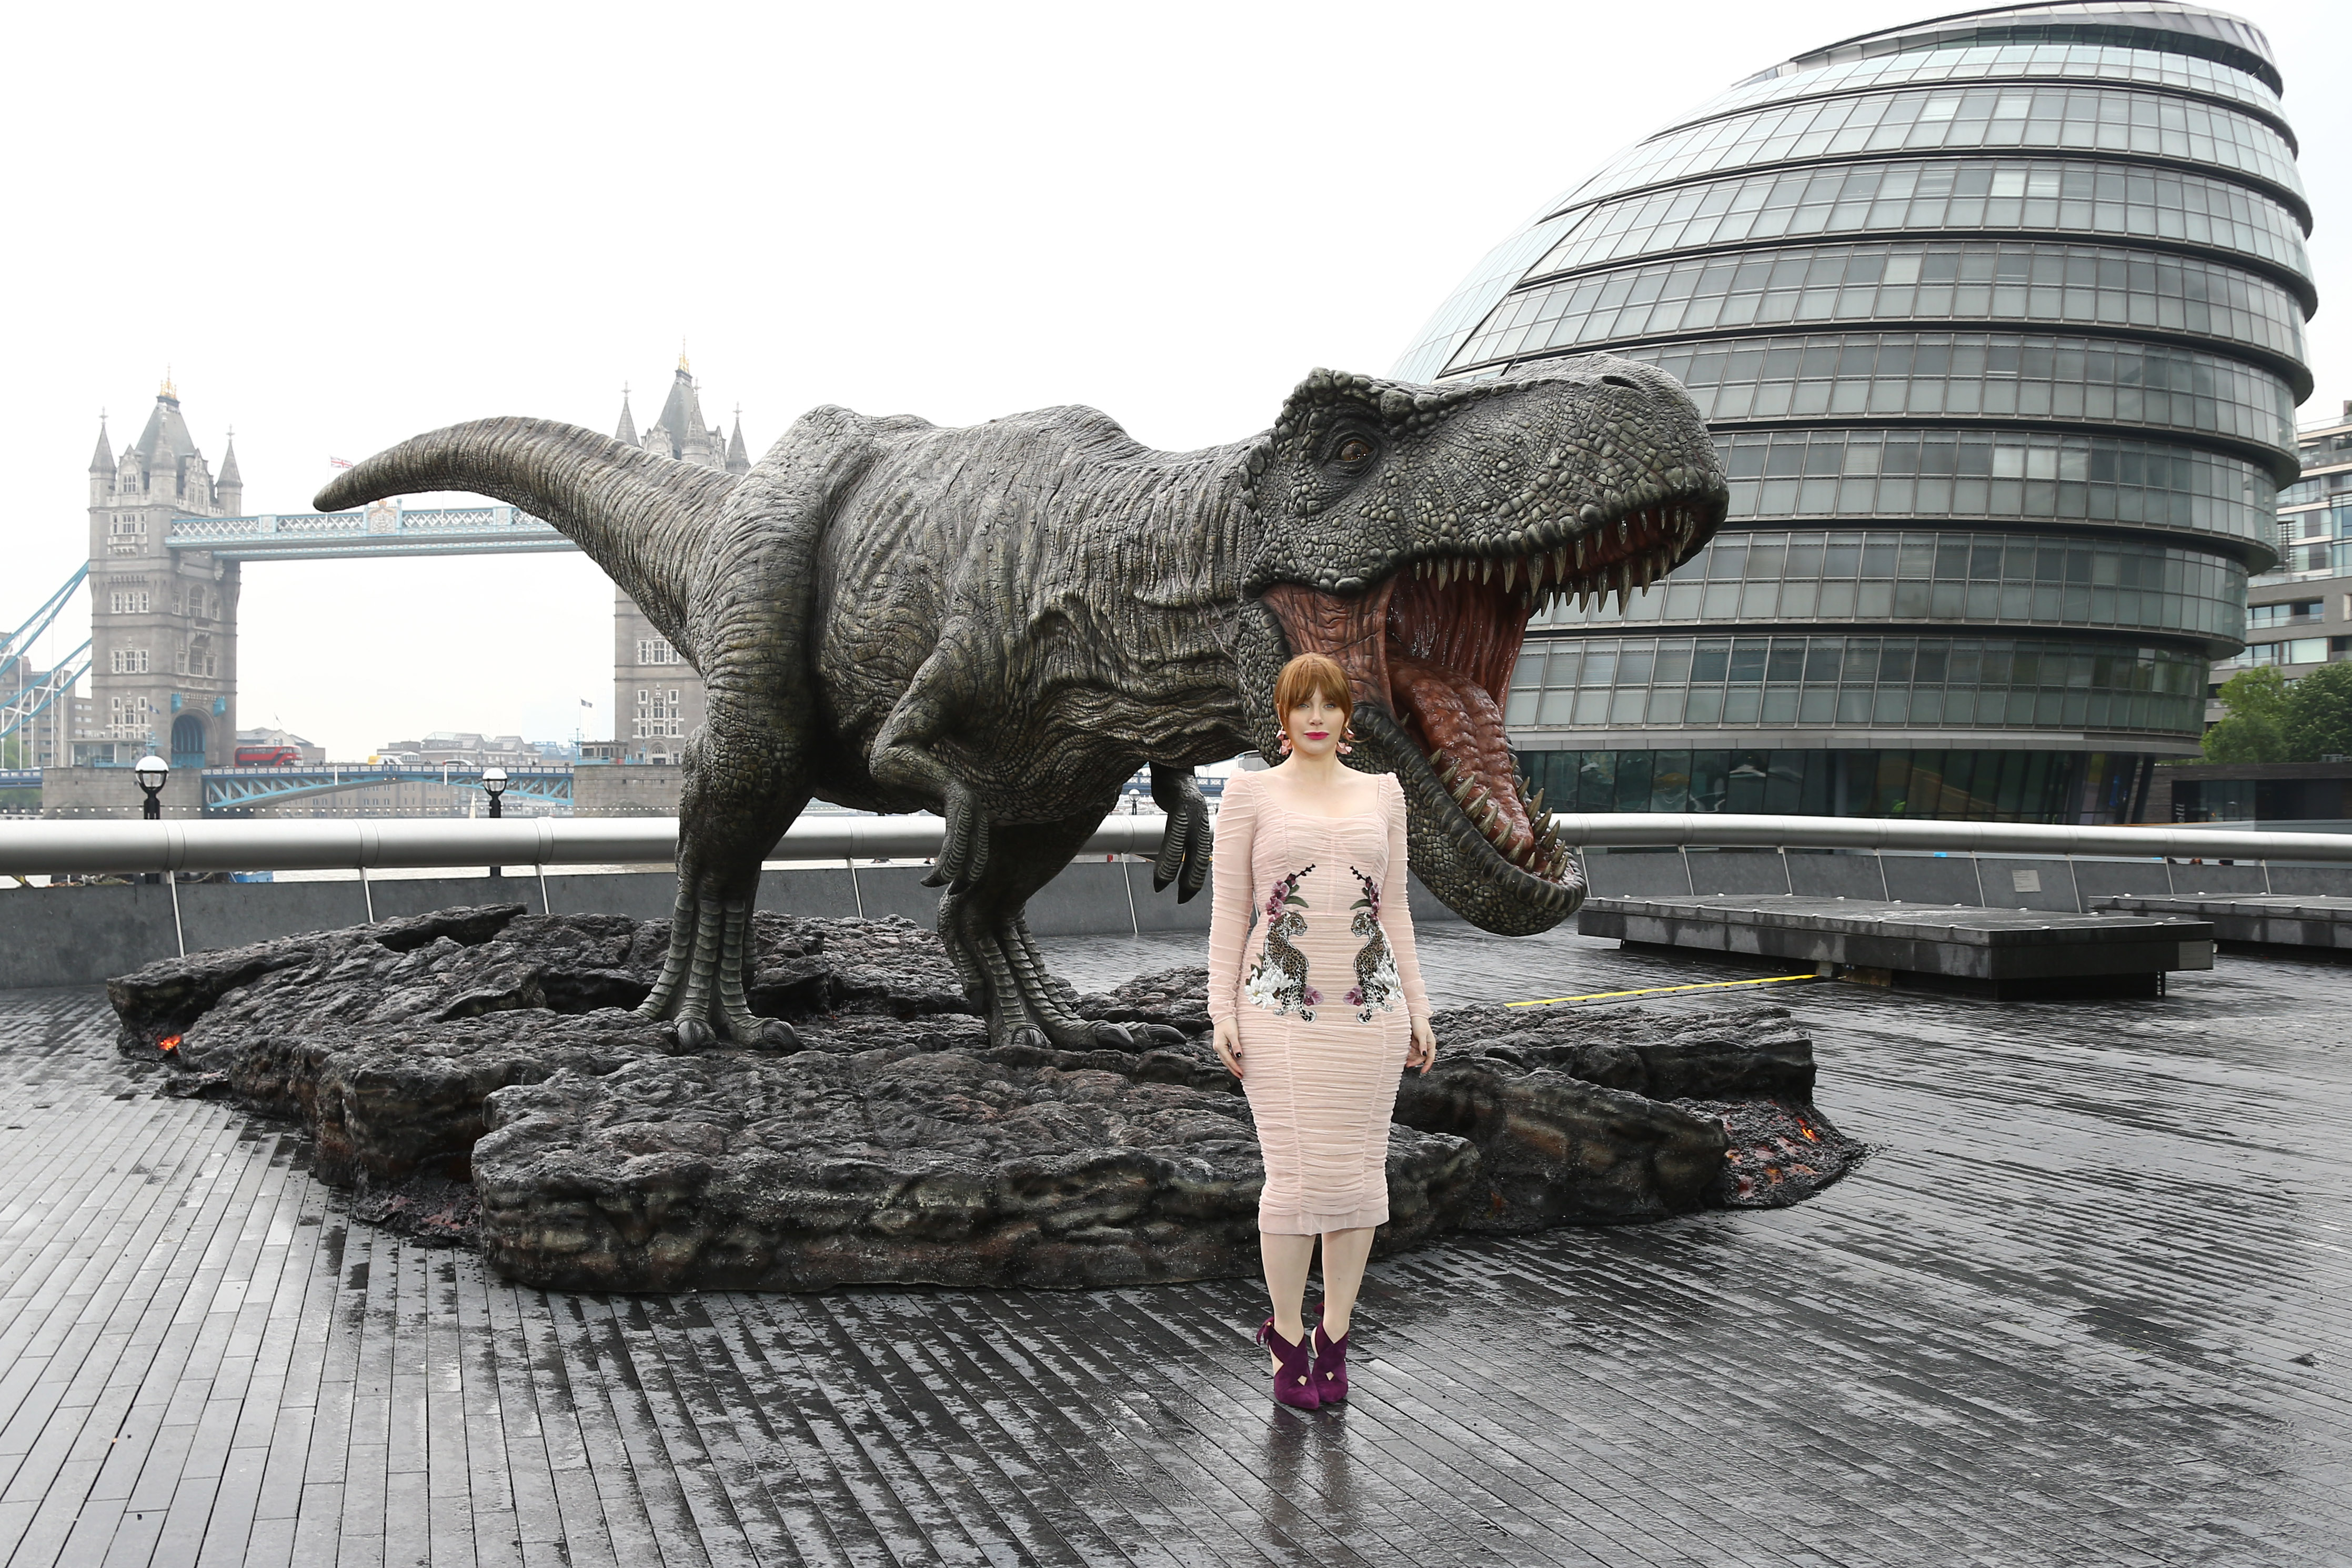 'Jurassic World: Fallen Kingdom' photocall in LondonFeaturing: Bryce Dallas HowardWhere: London, United KingdomWhen: 24 May 2018Credit: JRP/WENN